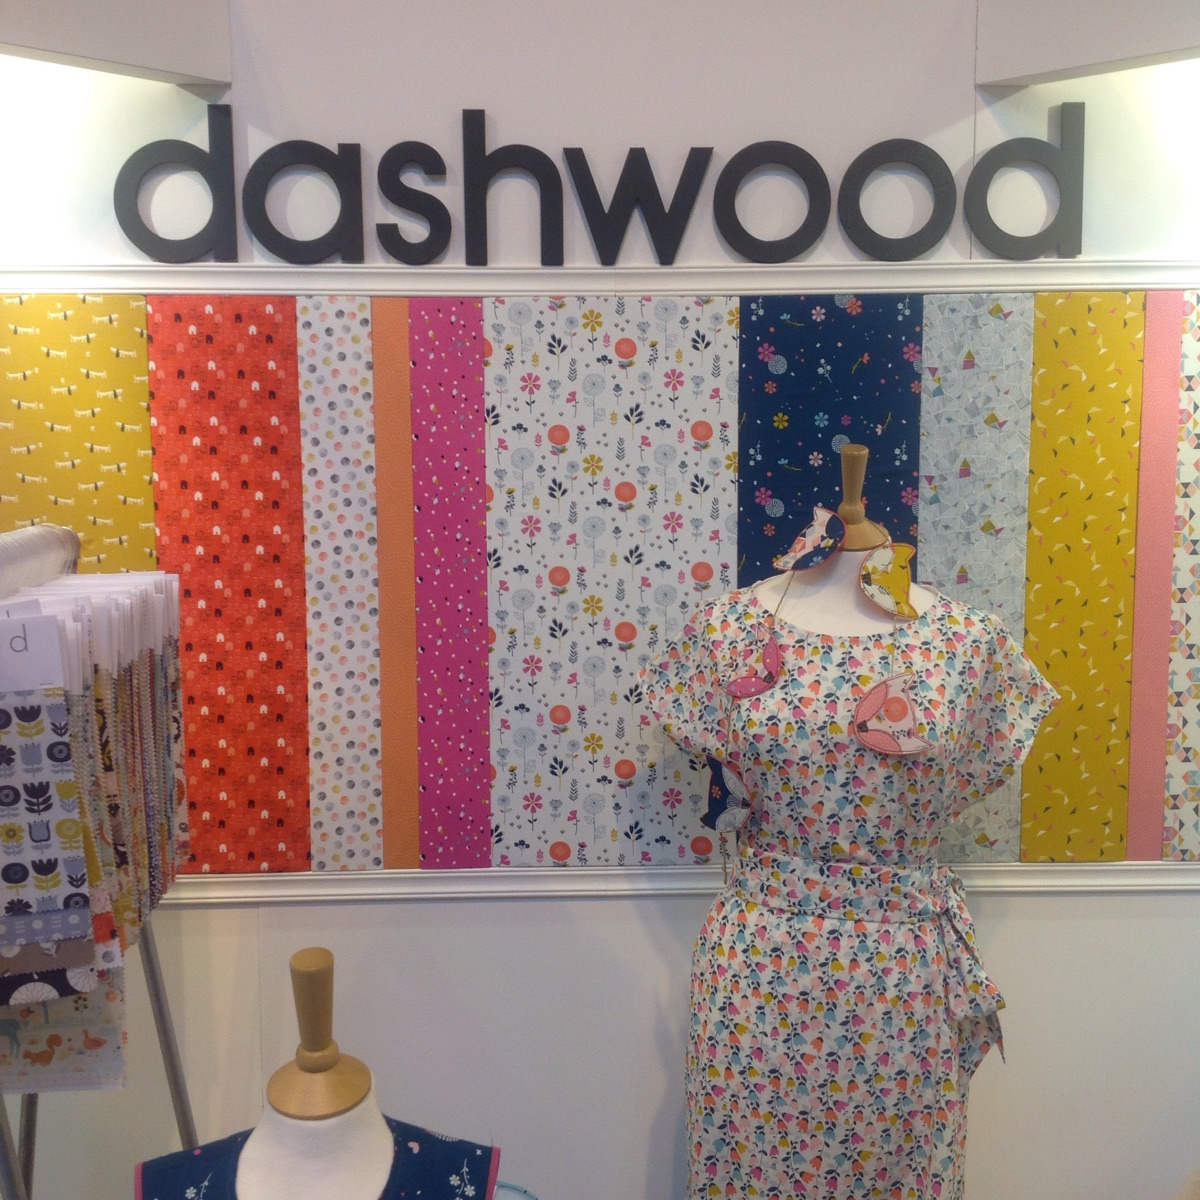 dashwood studio (@dashwoodstudio) Cover Image